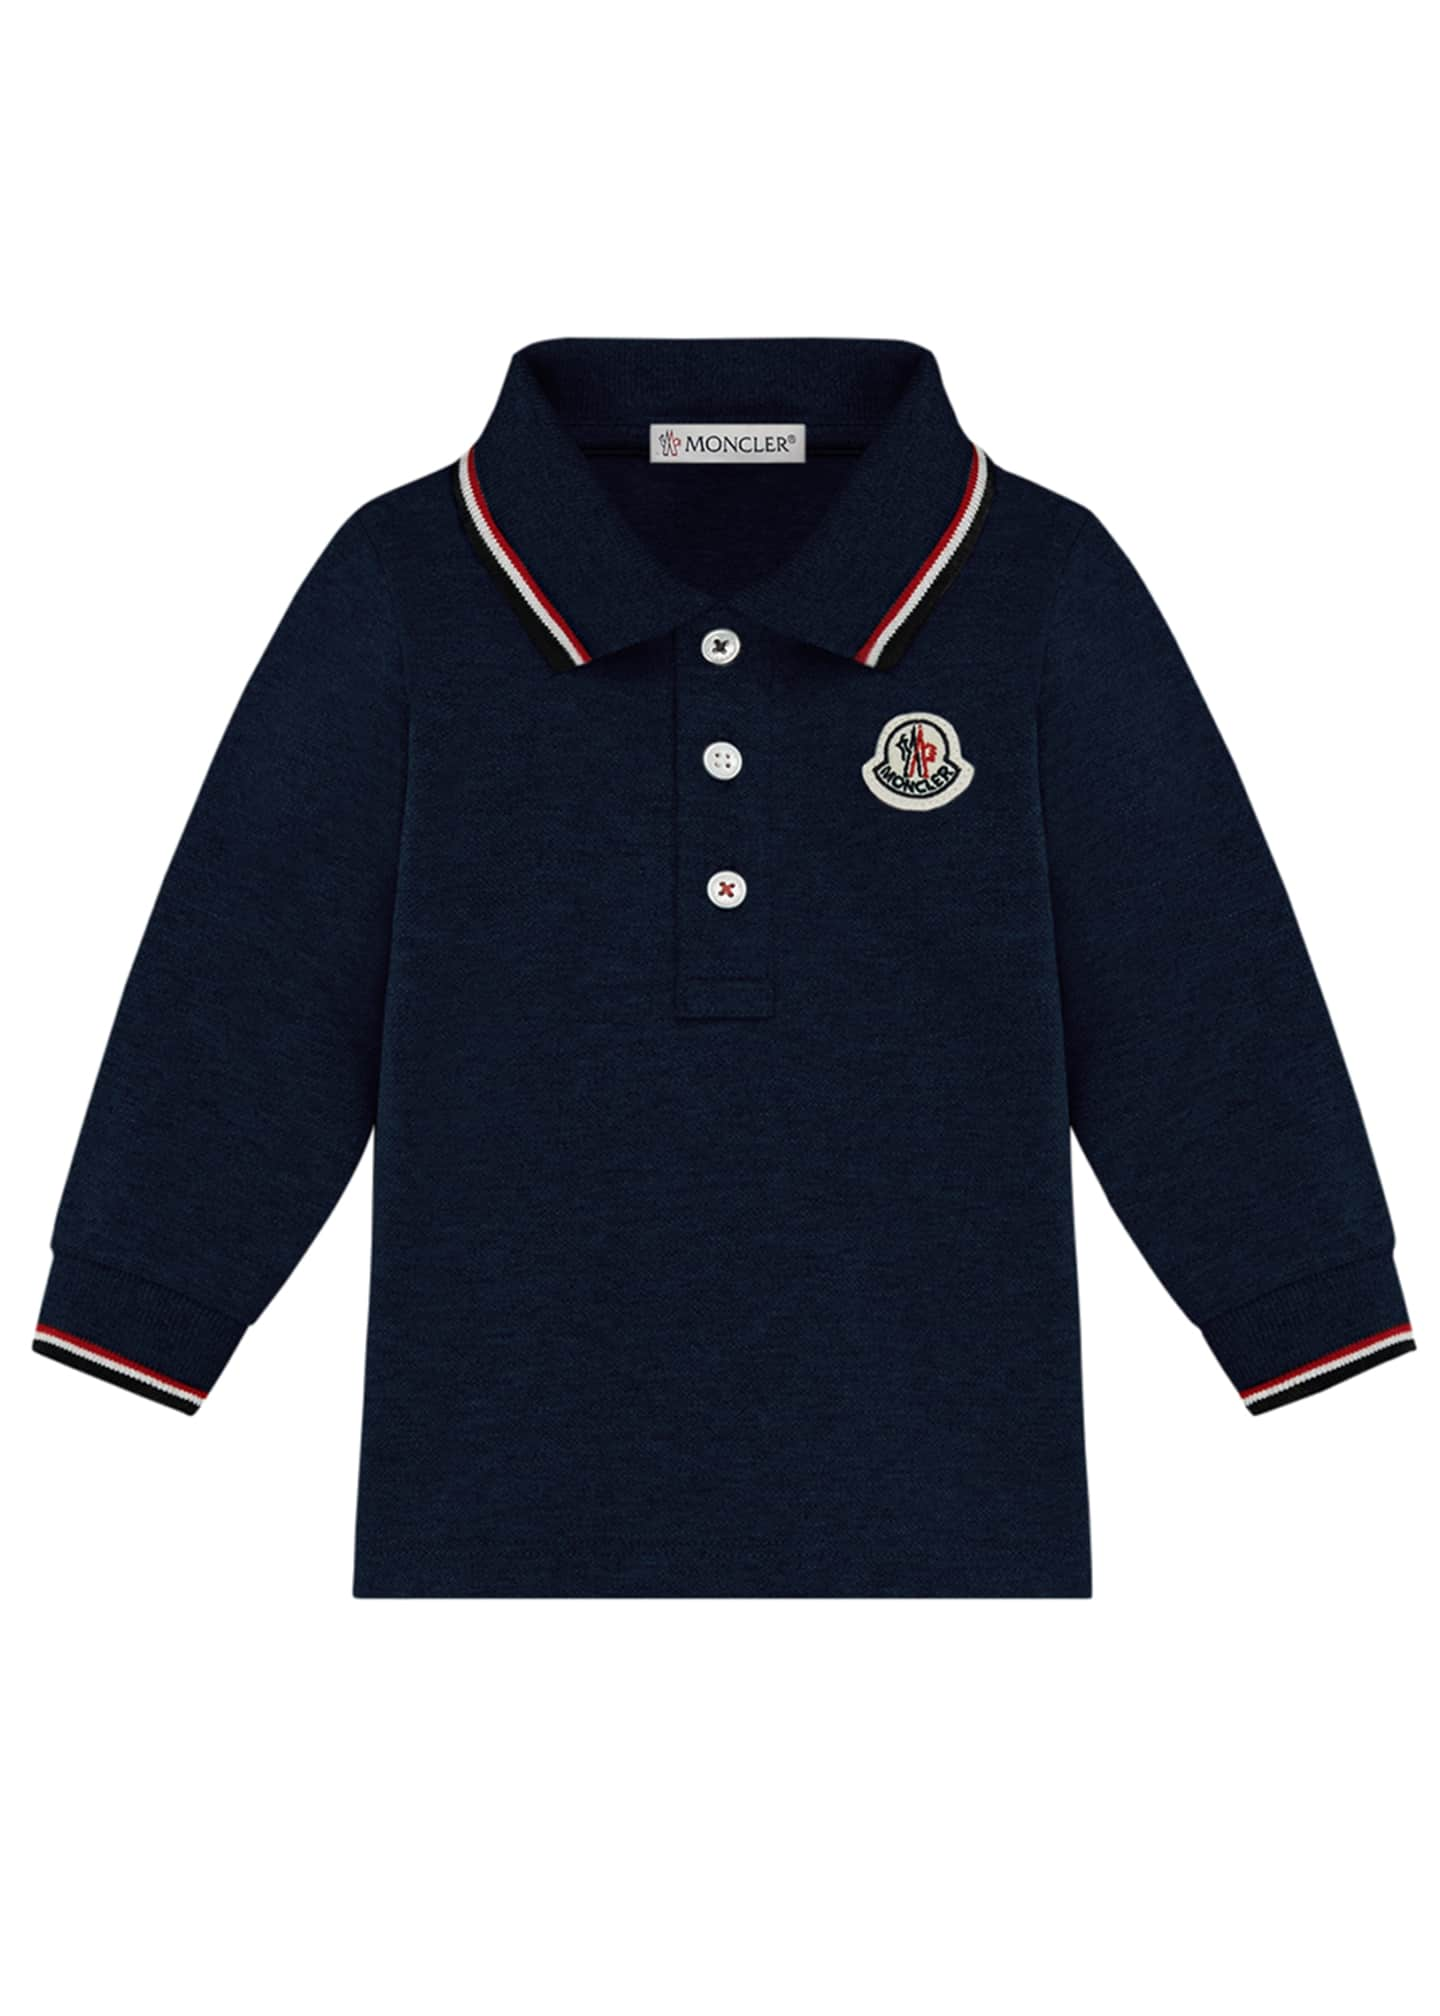 Moncler Long-Sleeve Polo Shirt w/ Tricolor Tipping, Size